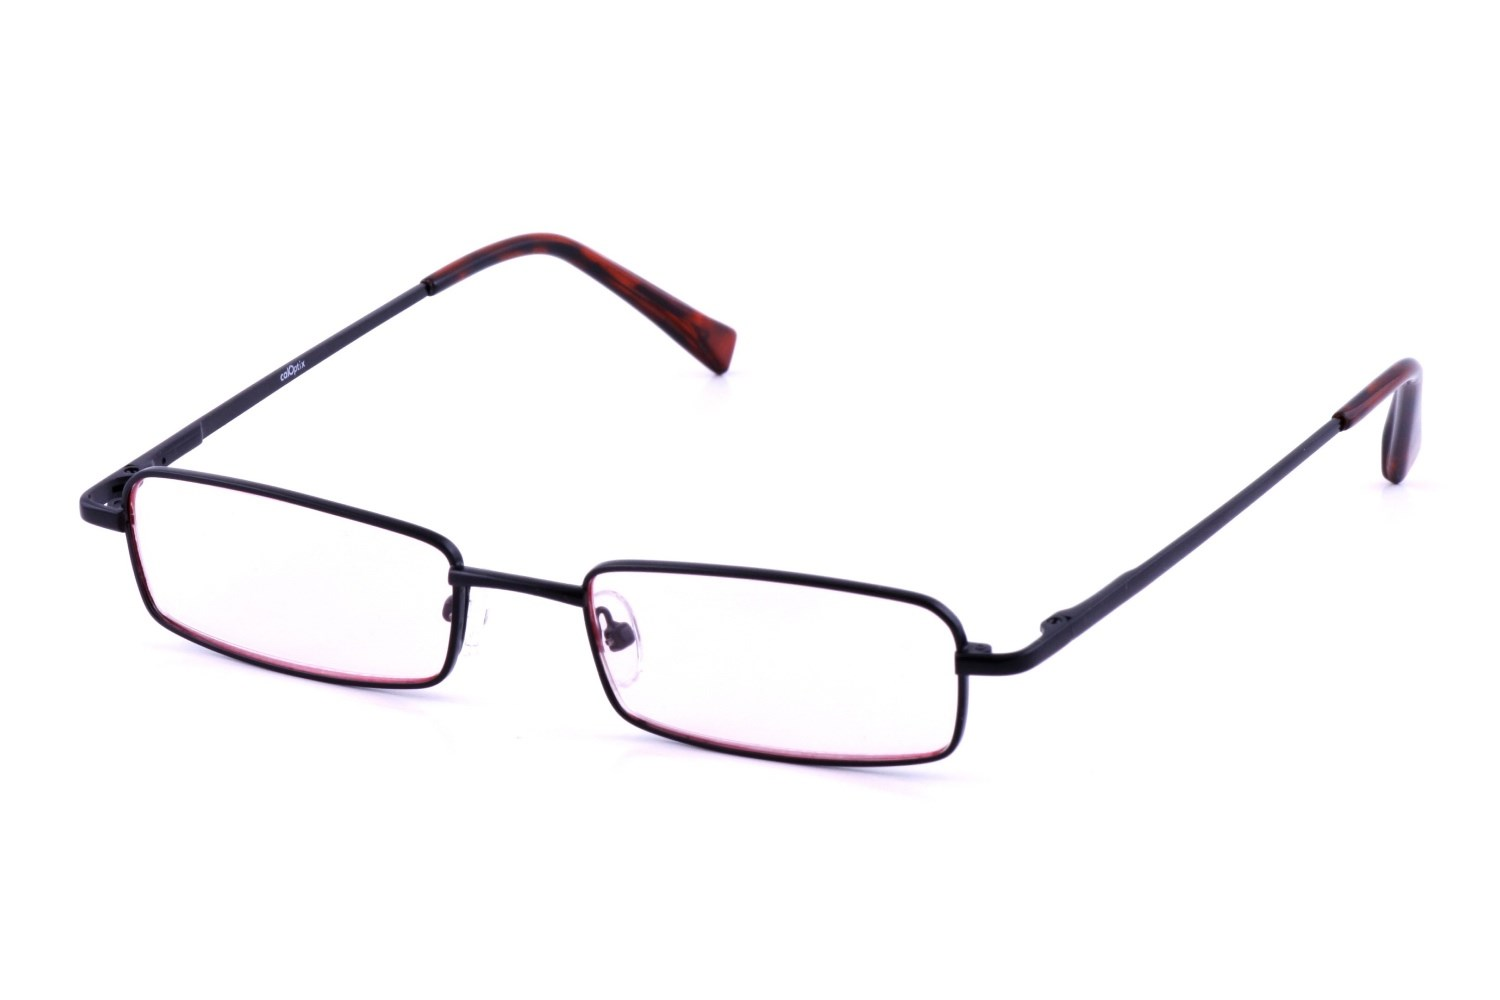 432c6d273c0 Reading Glasses - Computer Vision Aides Eyewear glasses and contact ...